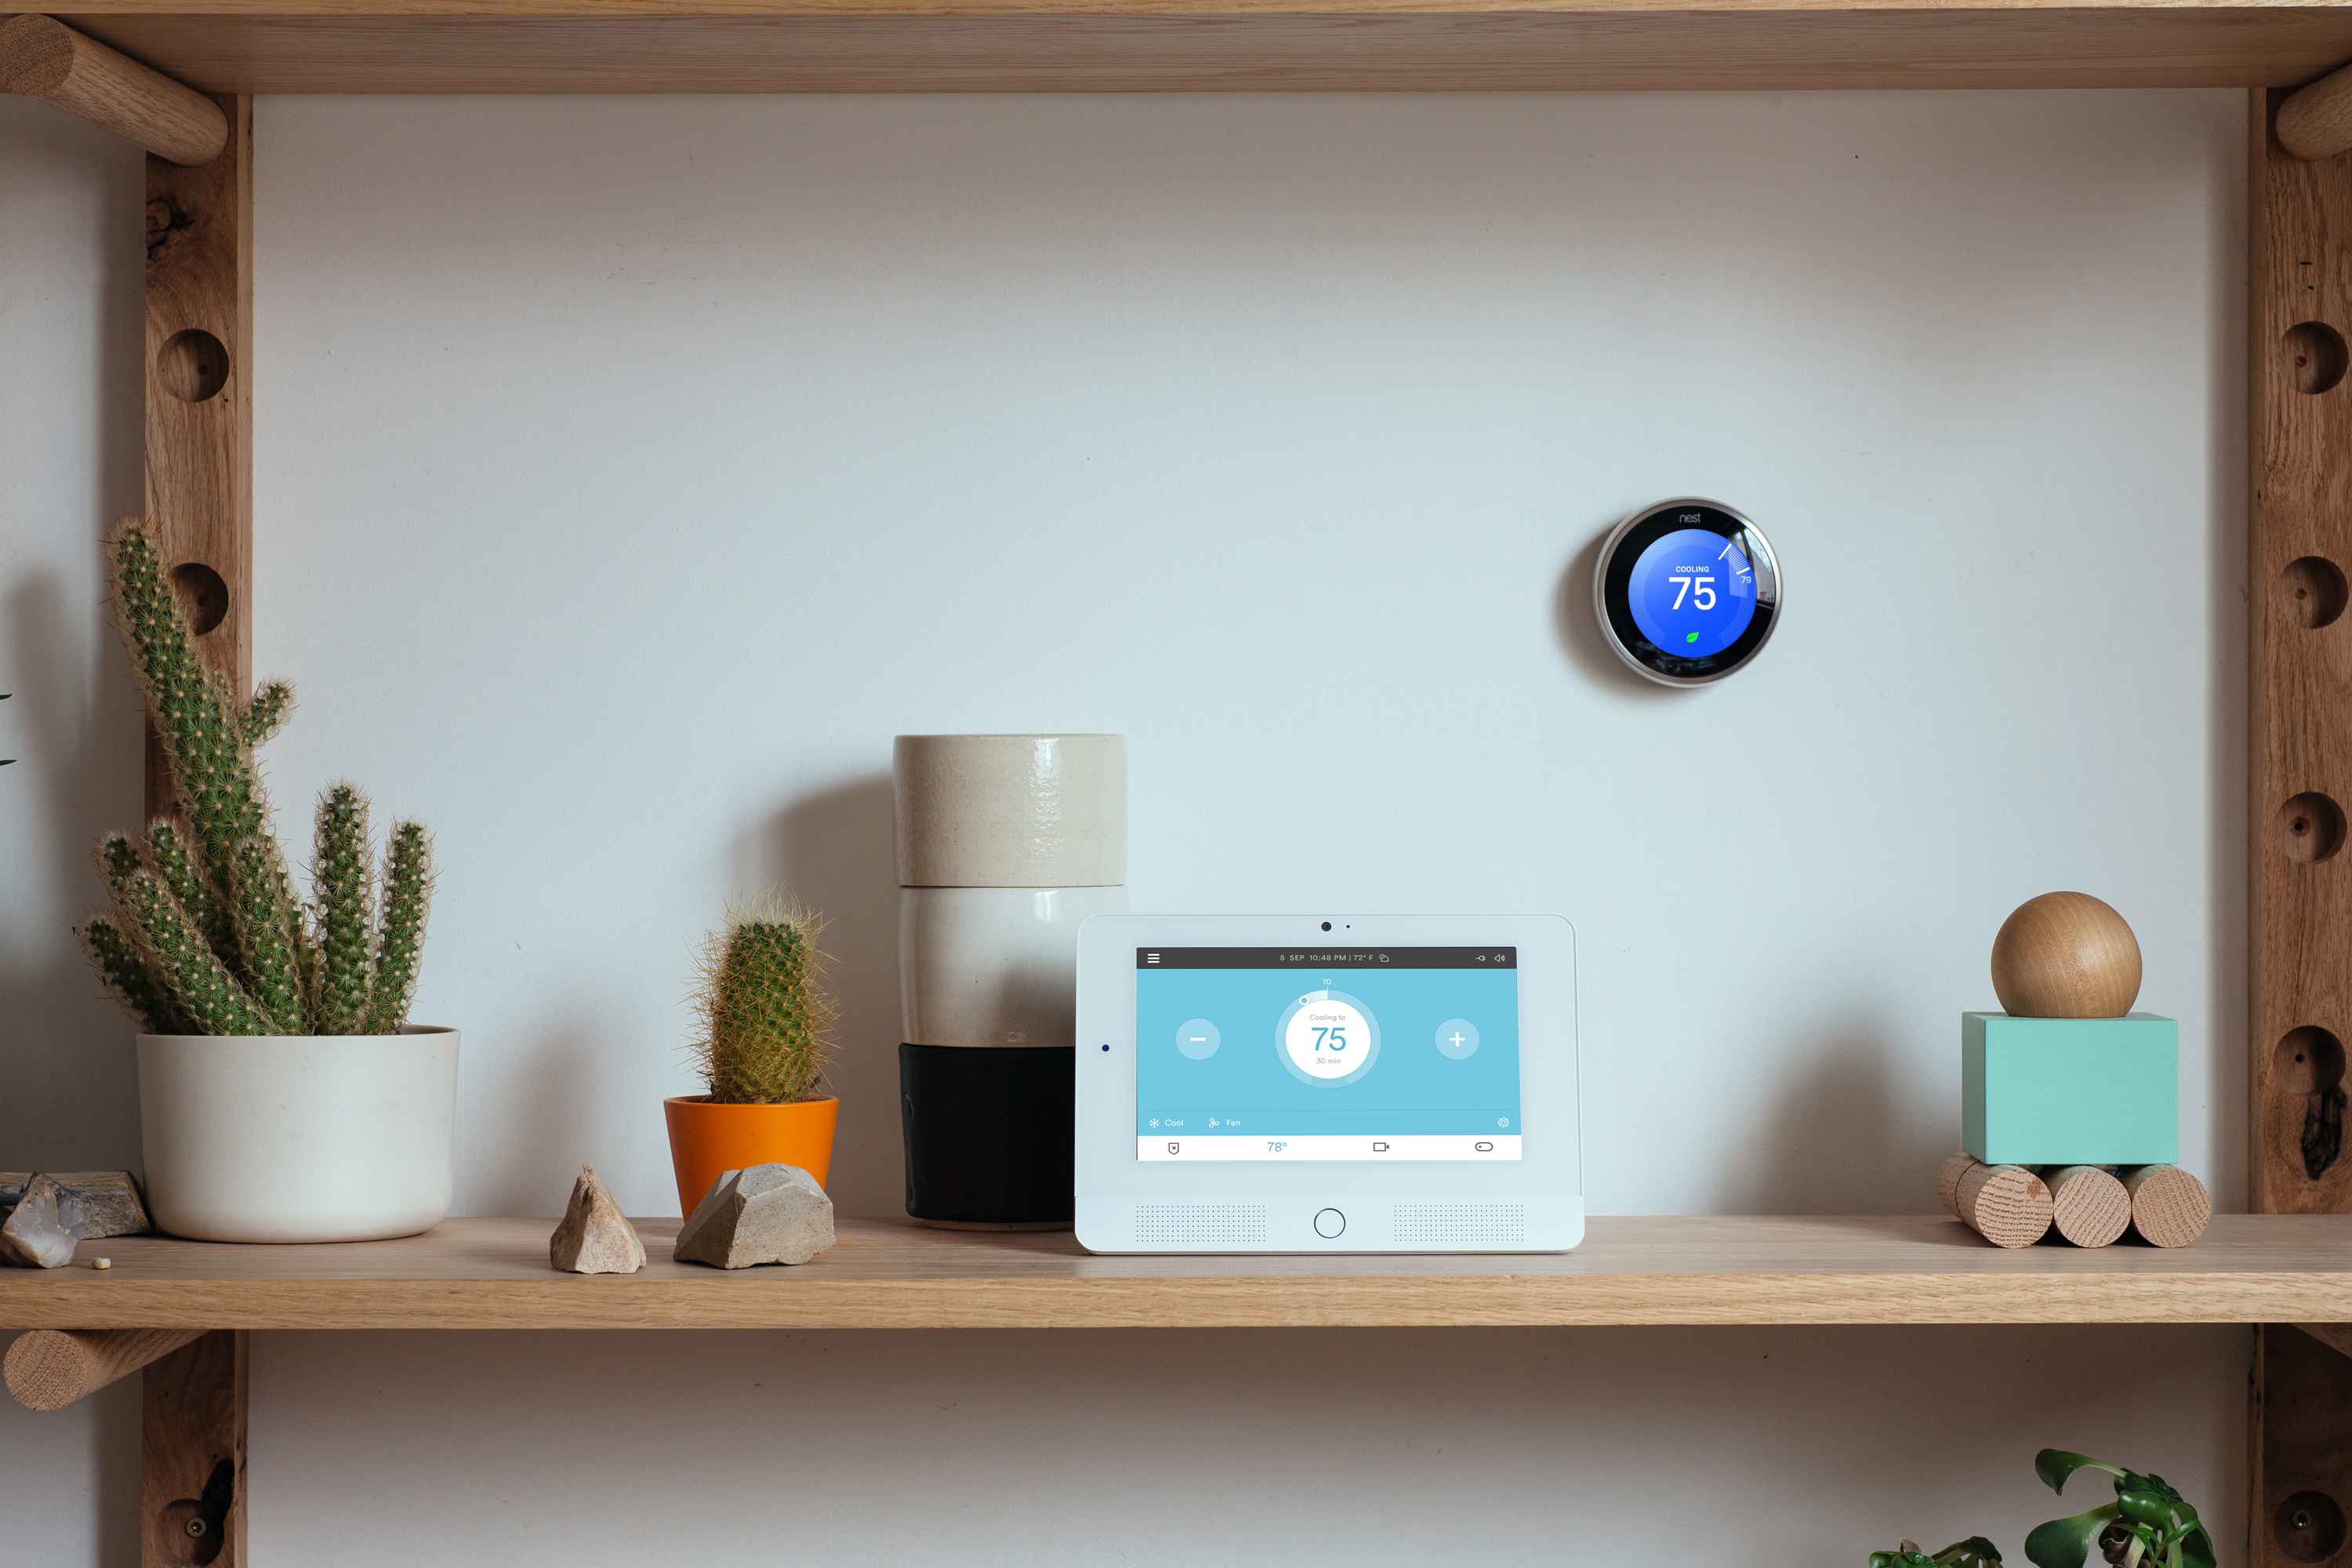 Vivint Smart Home Announces Integration with Nest Learning Thermostat |  Business Wire